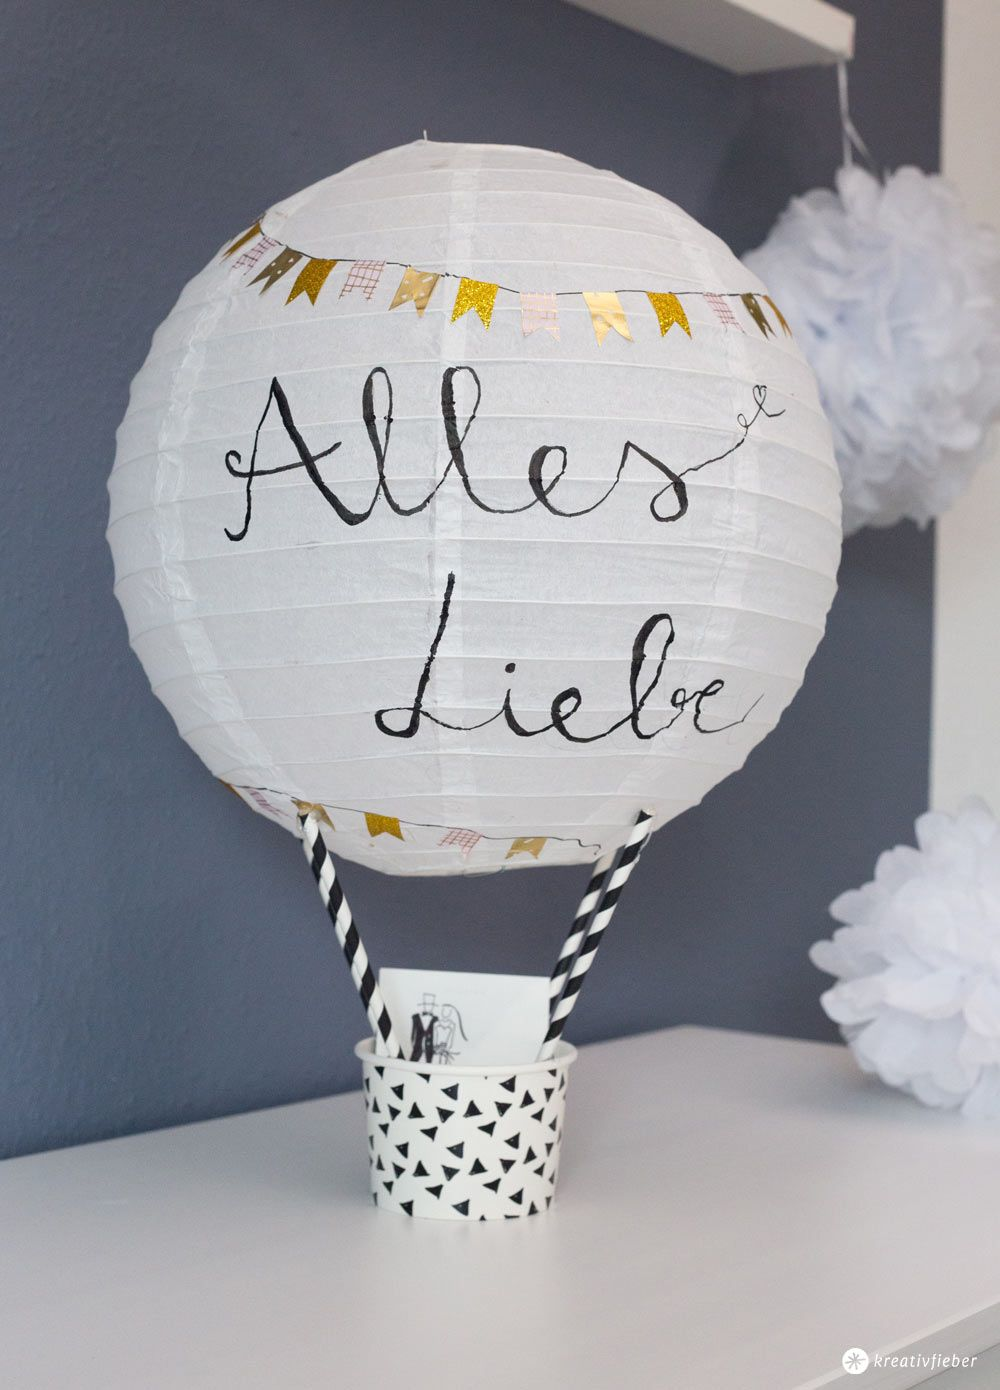 diy geschenkidee zur hochzeit hei luftballon geldgeschenk basteln diy geschenkideen zur. Black Bedroom Furniture Sets. Home Design Ideas